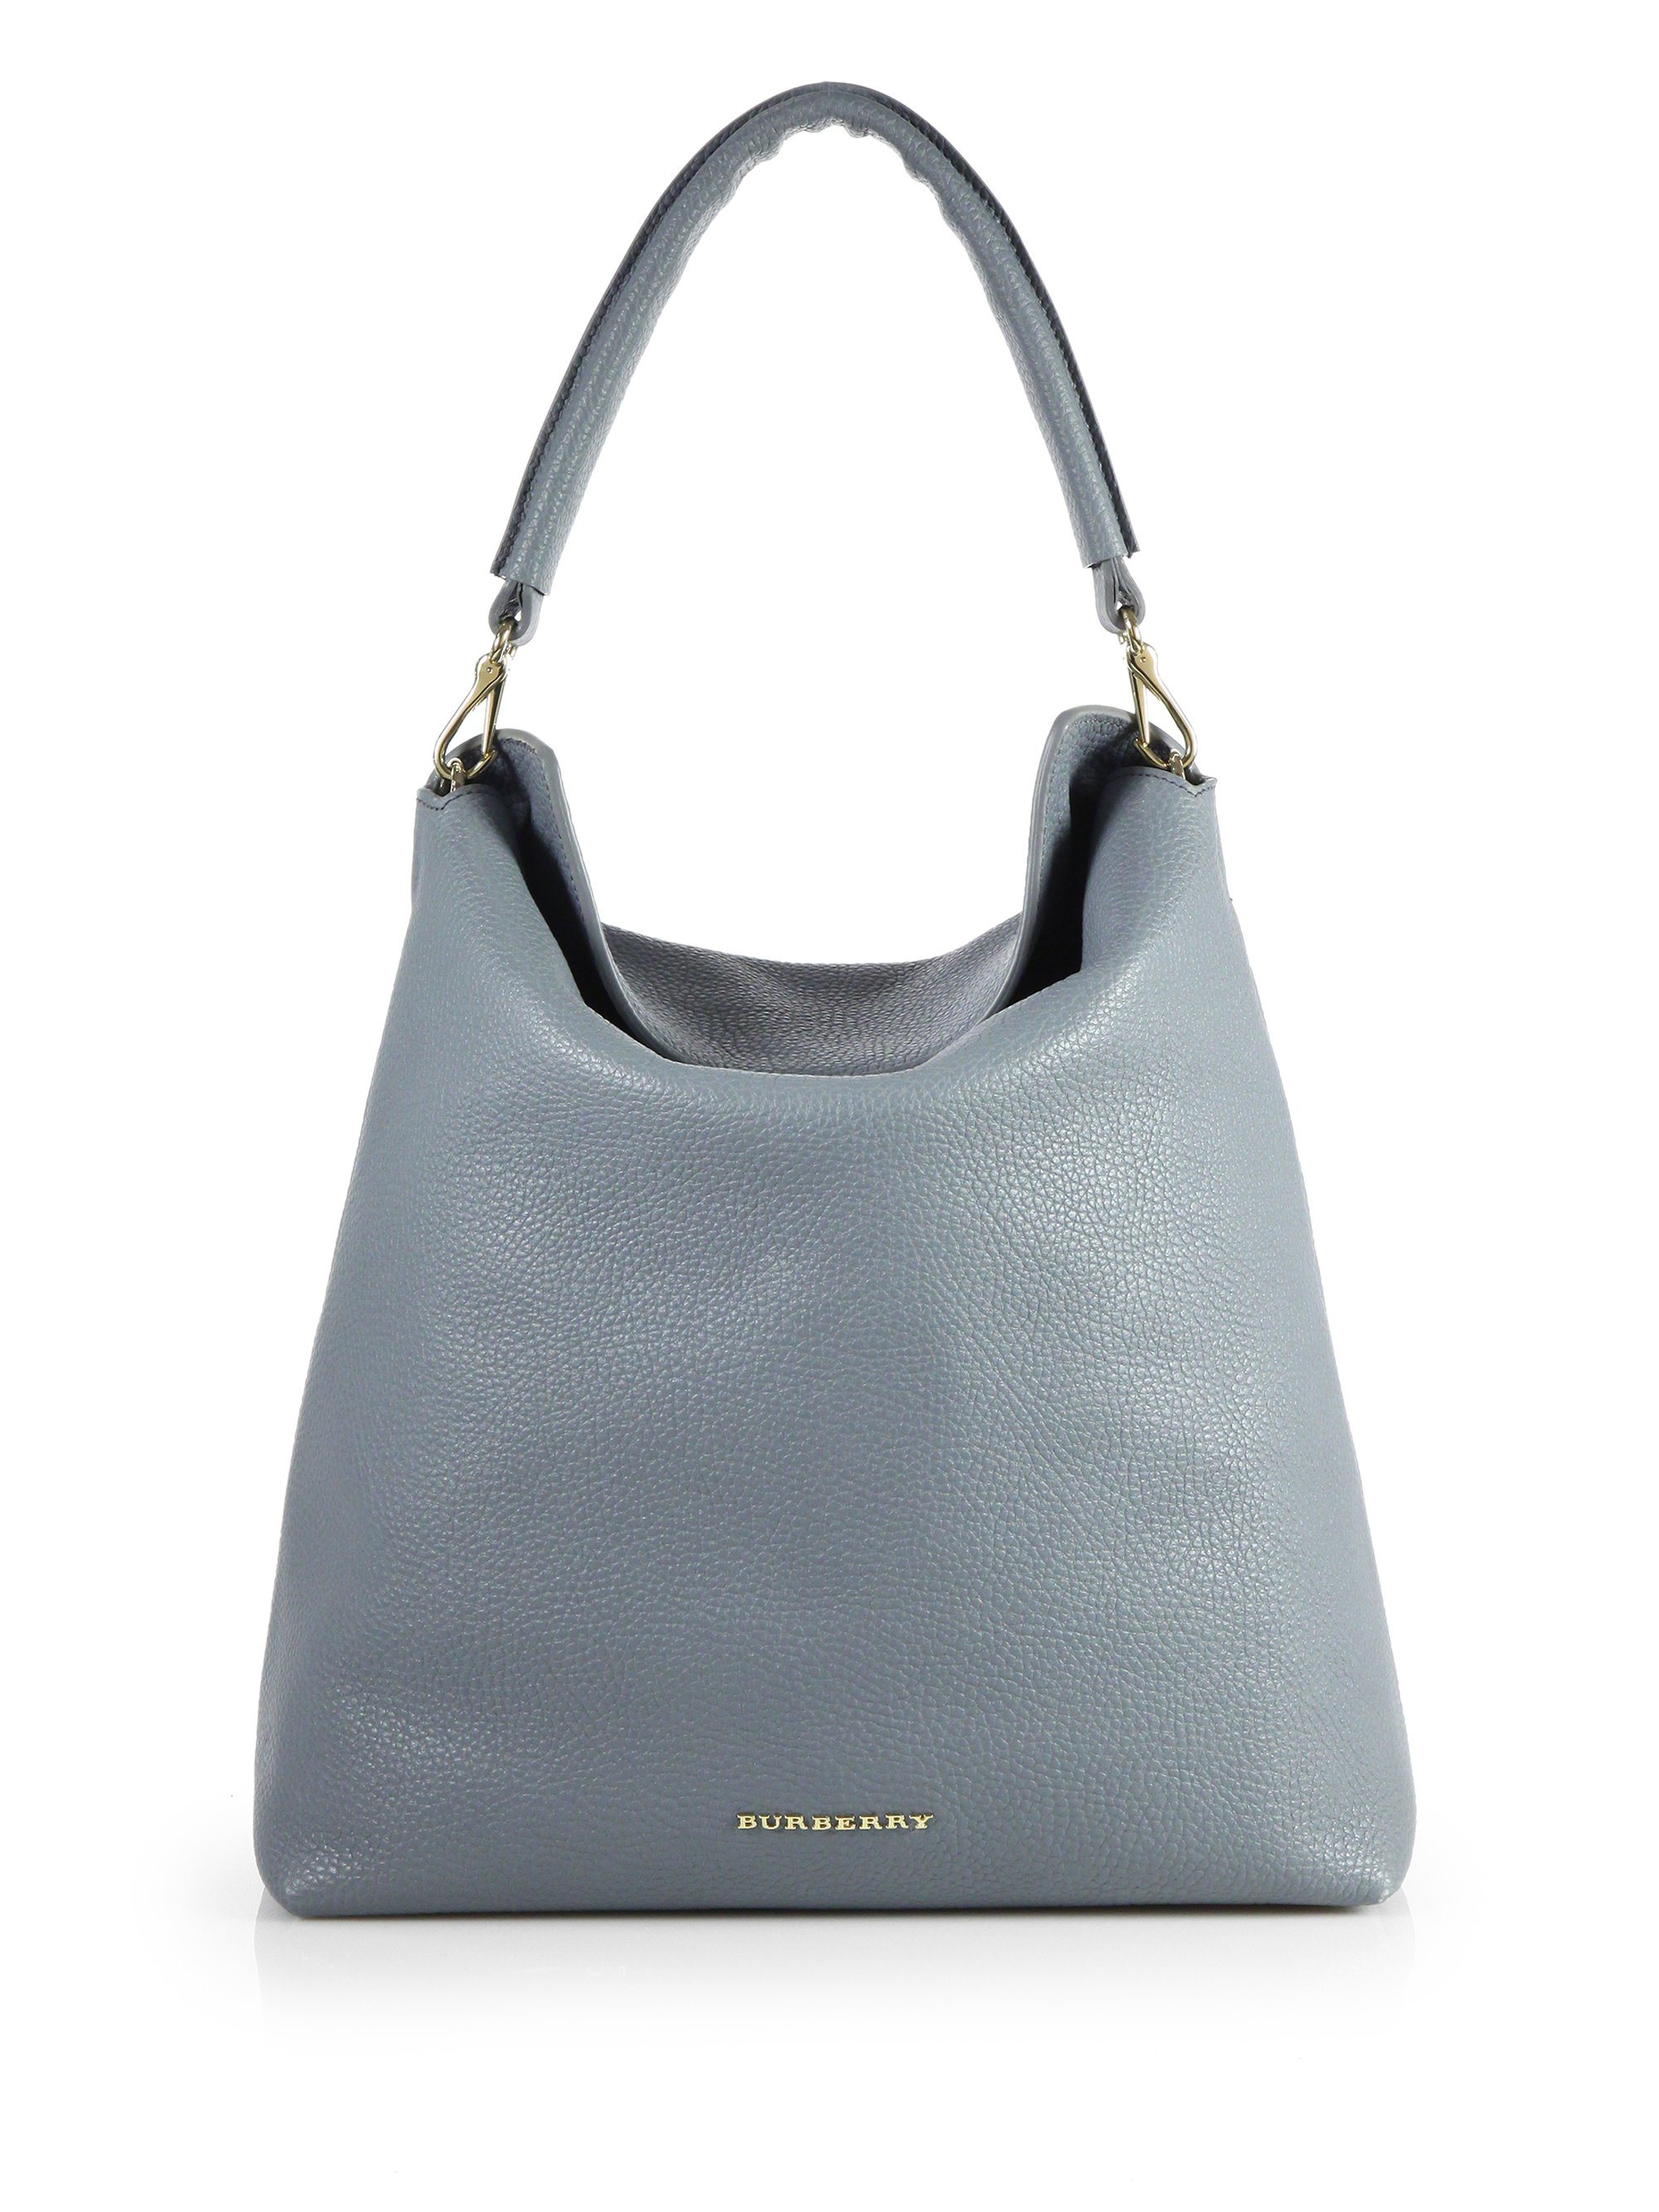 0e7a62d208 Burberry Pebble Leather Hobostyle Tote in Gray - Lyst